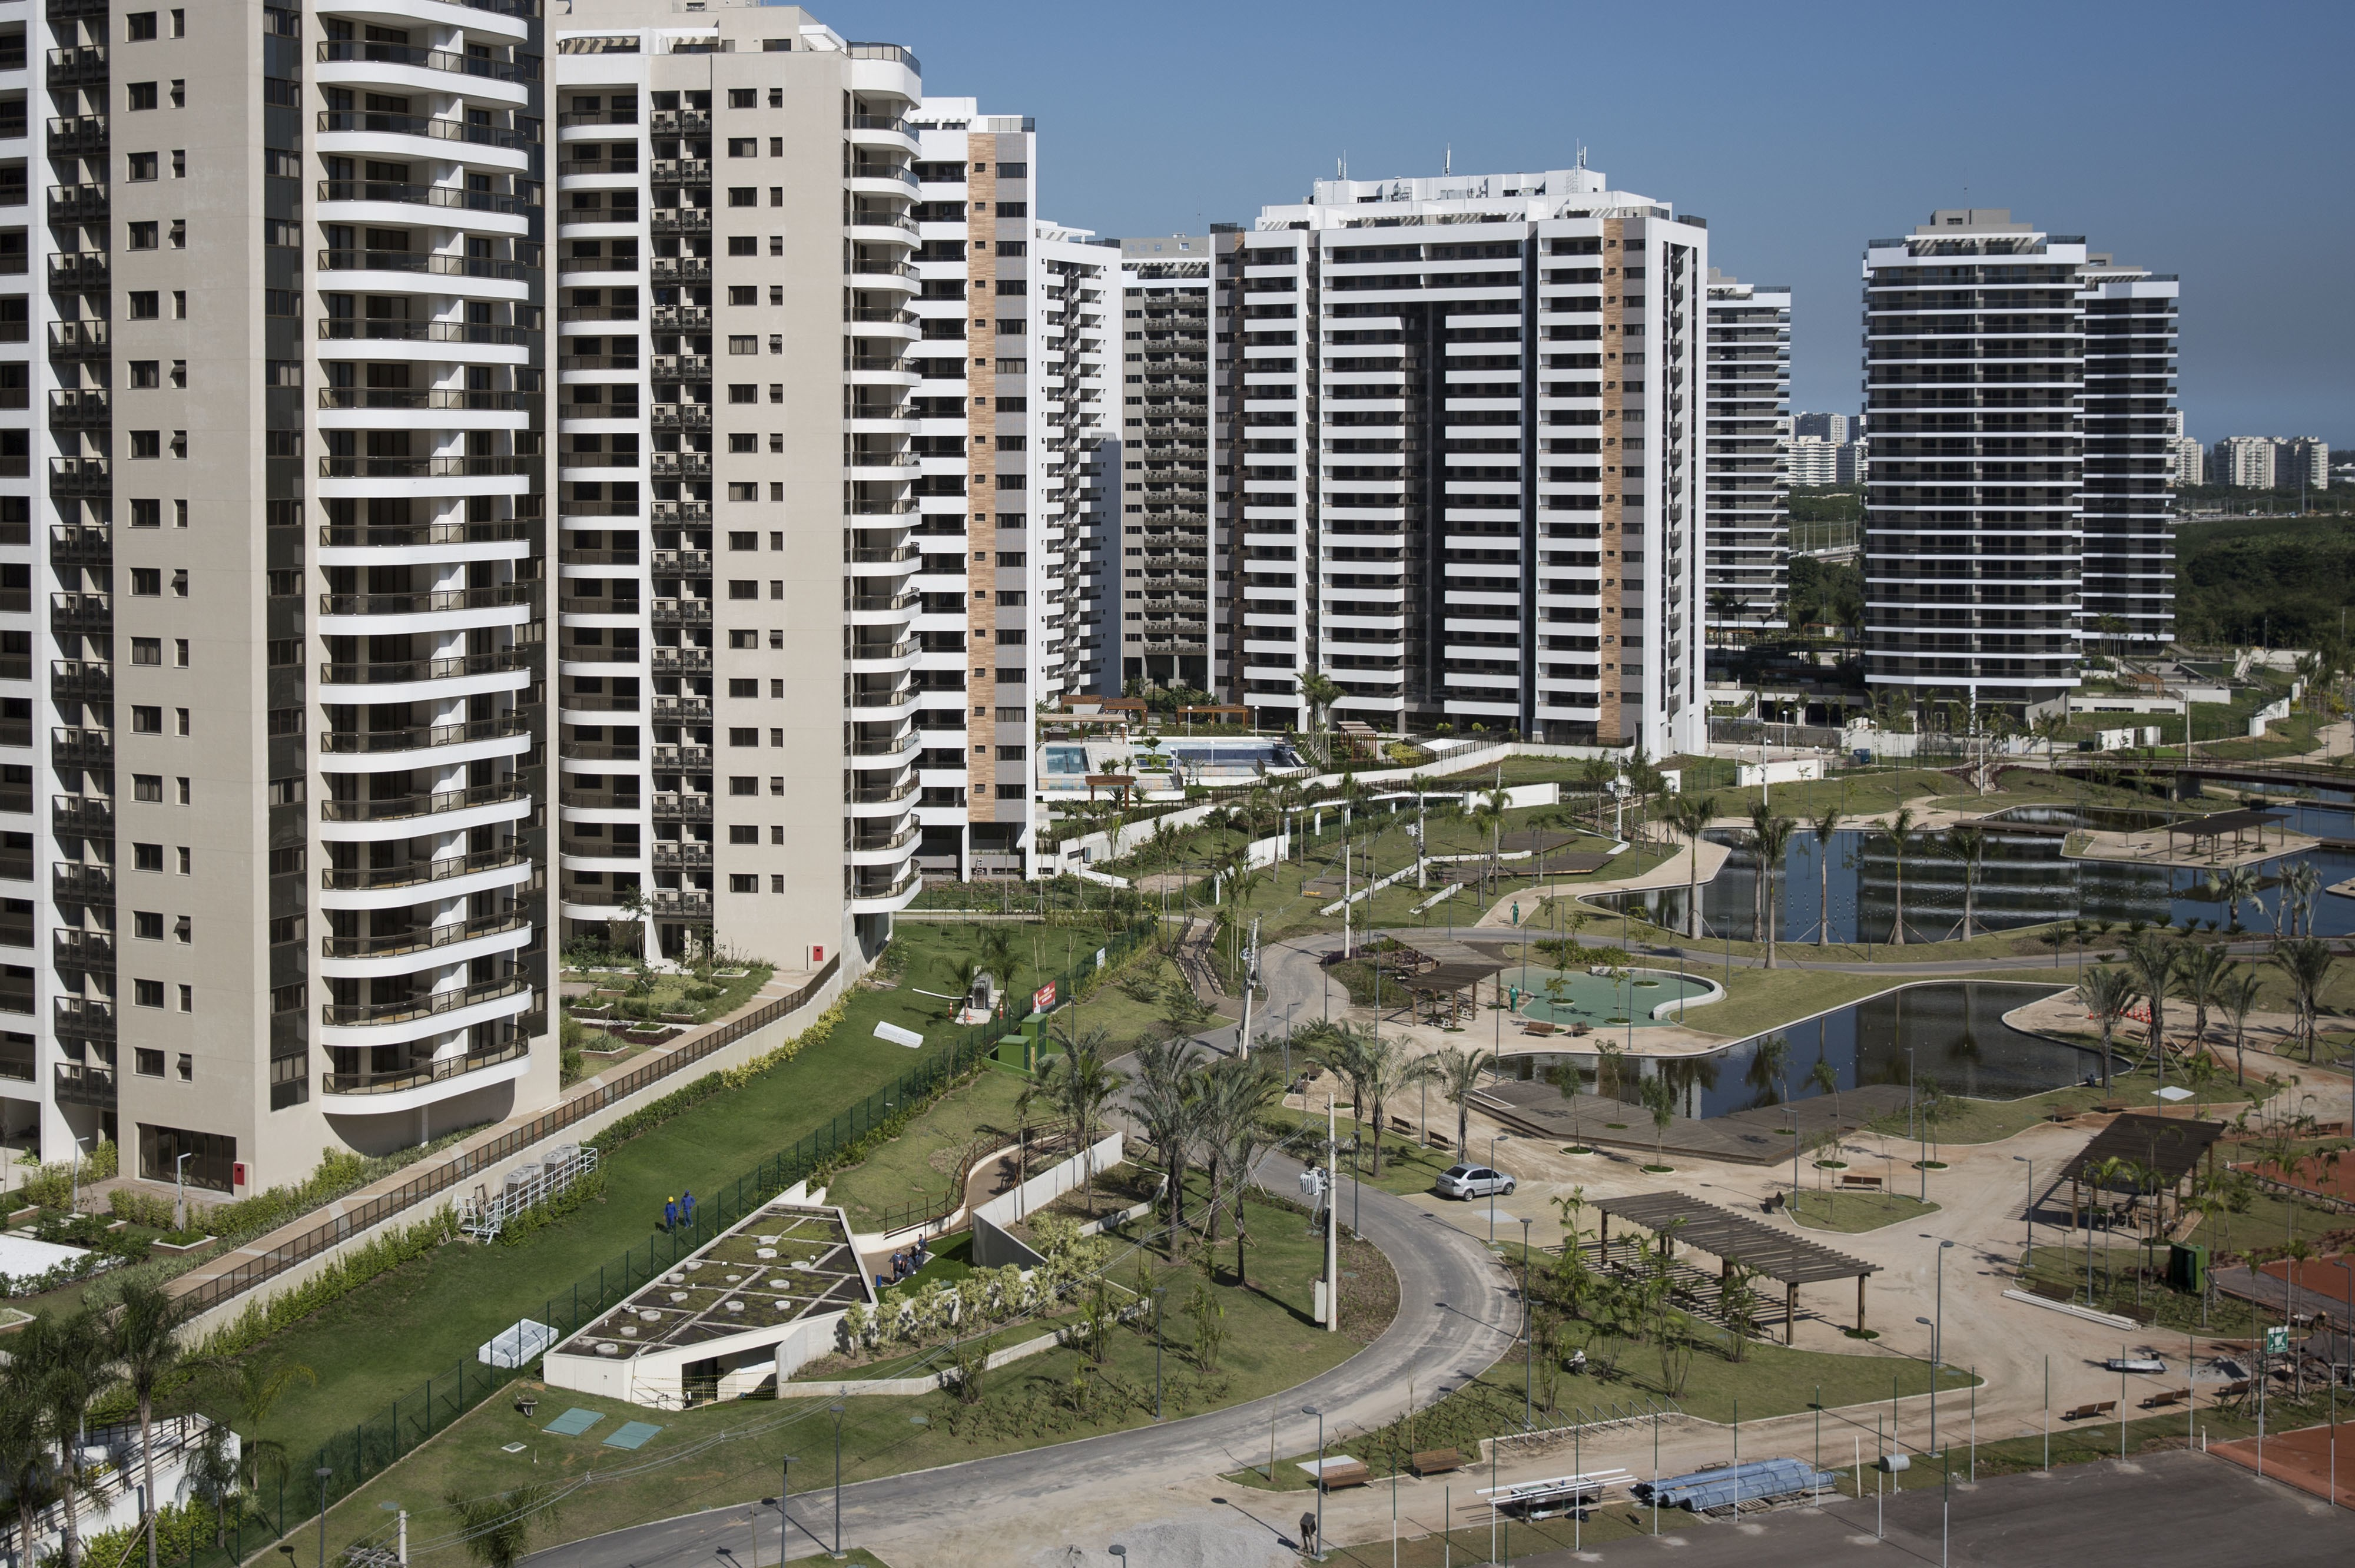 General view of buildings at the Olympic Village in Rio de Janeiro, Brazil, Wednesday, June 15, 2016. (AP Photo/Felipe Dana, Pool)